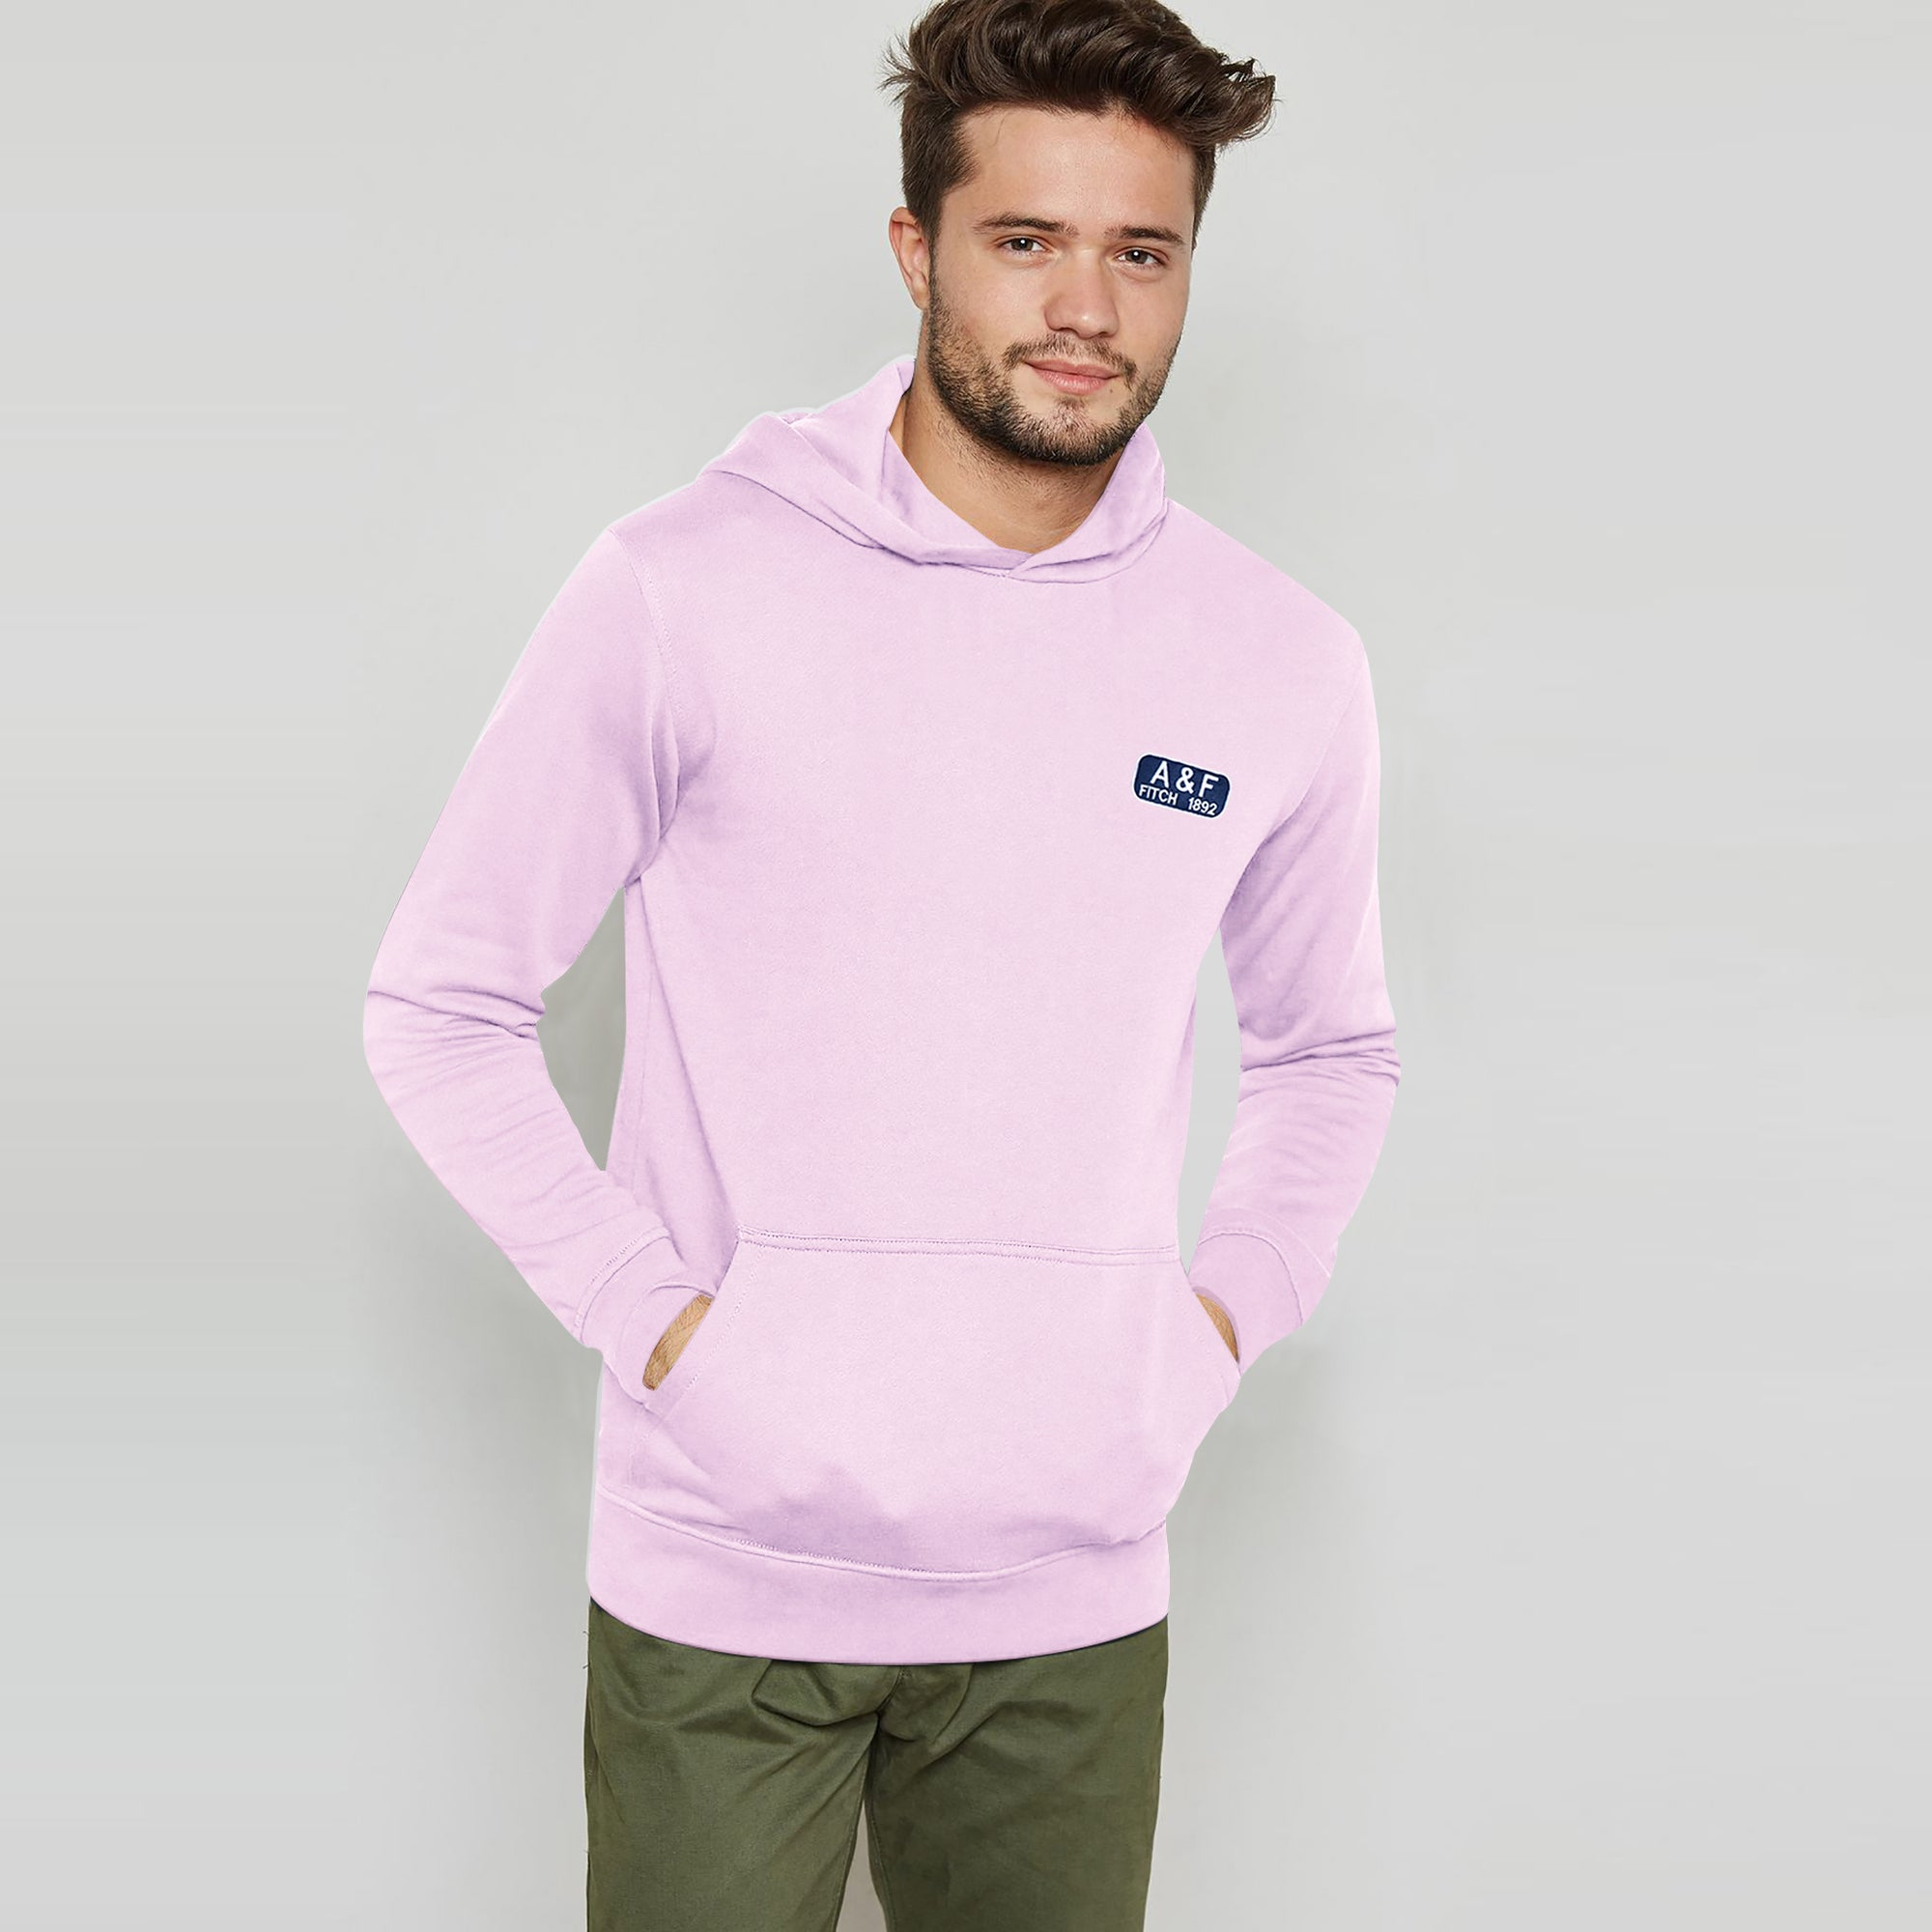 brandsego - A&F Terry Fleece Pullover Hoodie For Men-Light Pink-BE6726